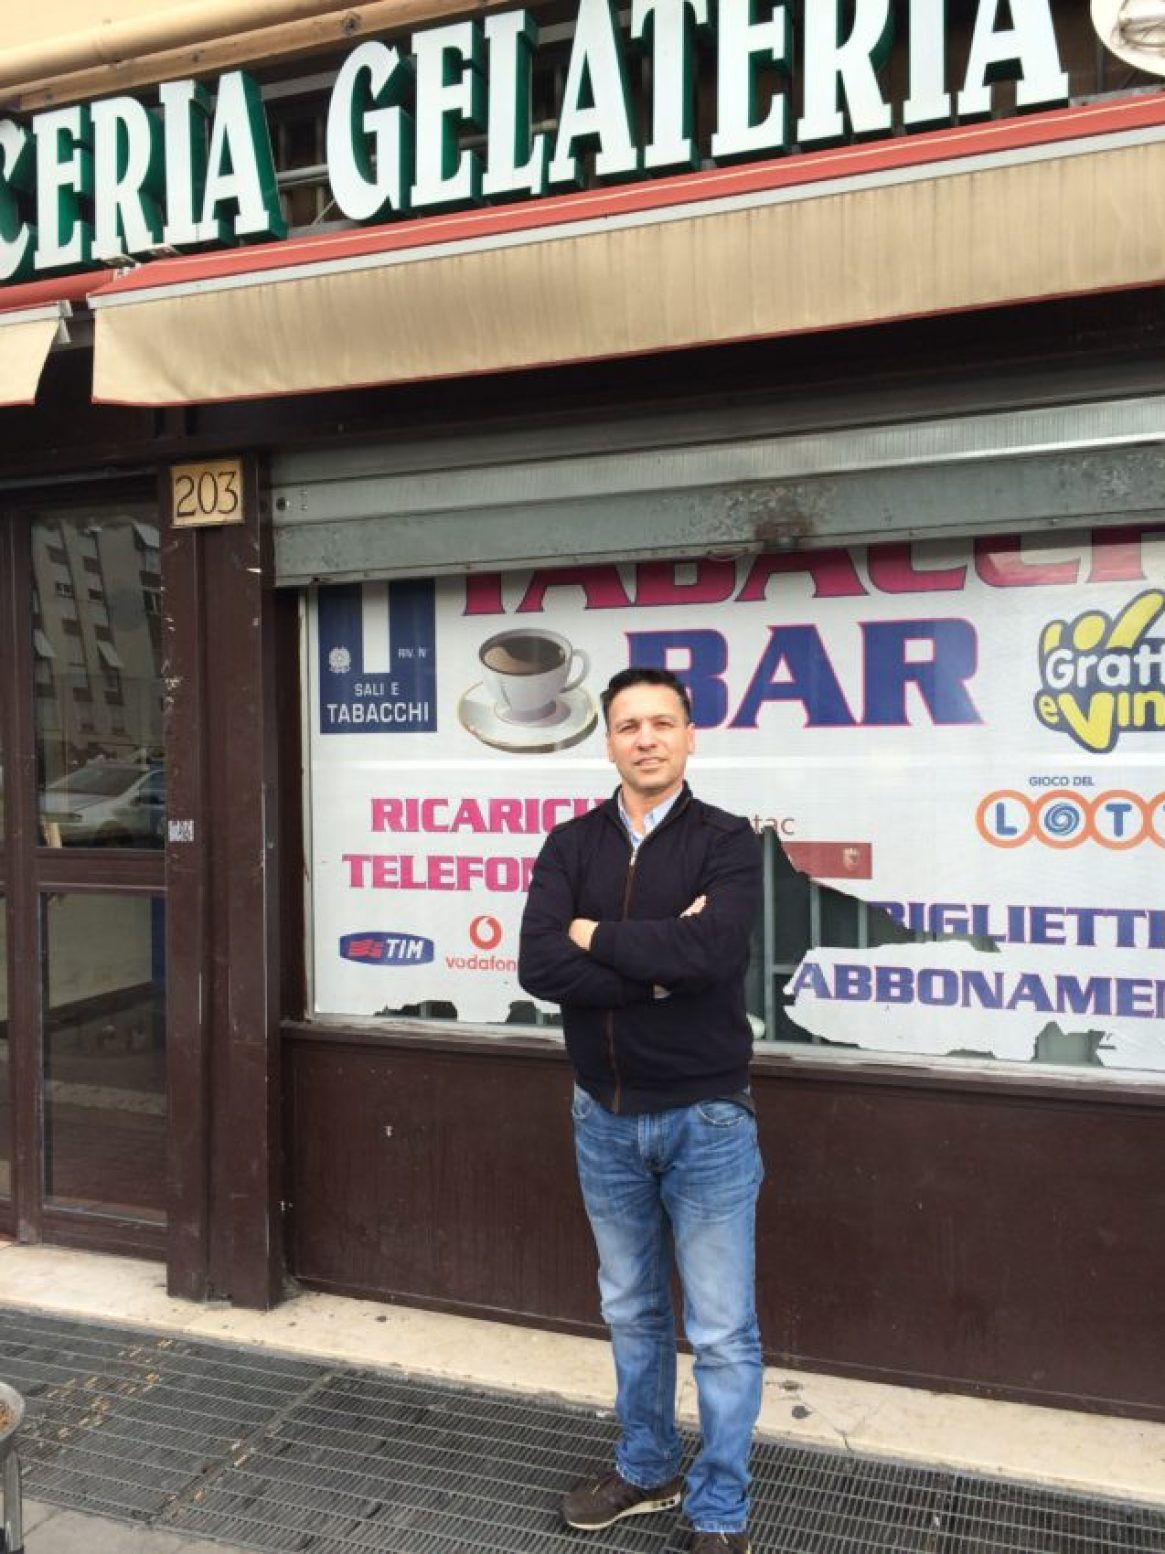 Rocco Sansotta moved to Rome from London, Ontario, in 1986 and took off his dad's bar in 1996.